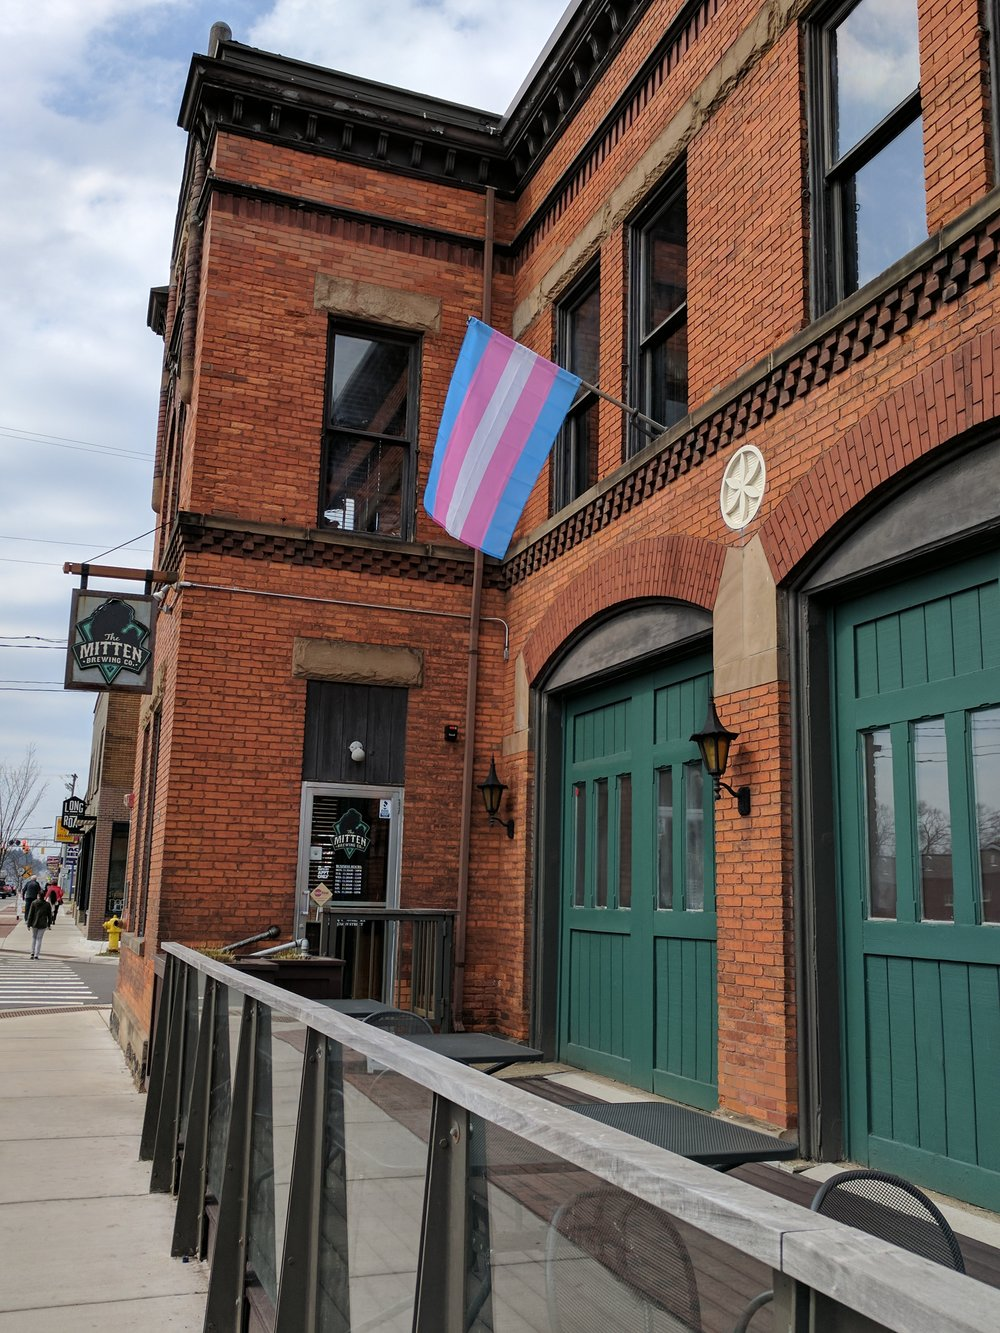 Trans flag flown @ Mitten Brewing Company